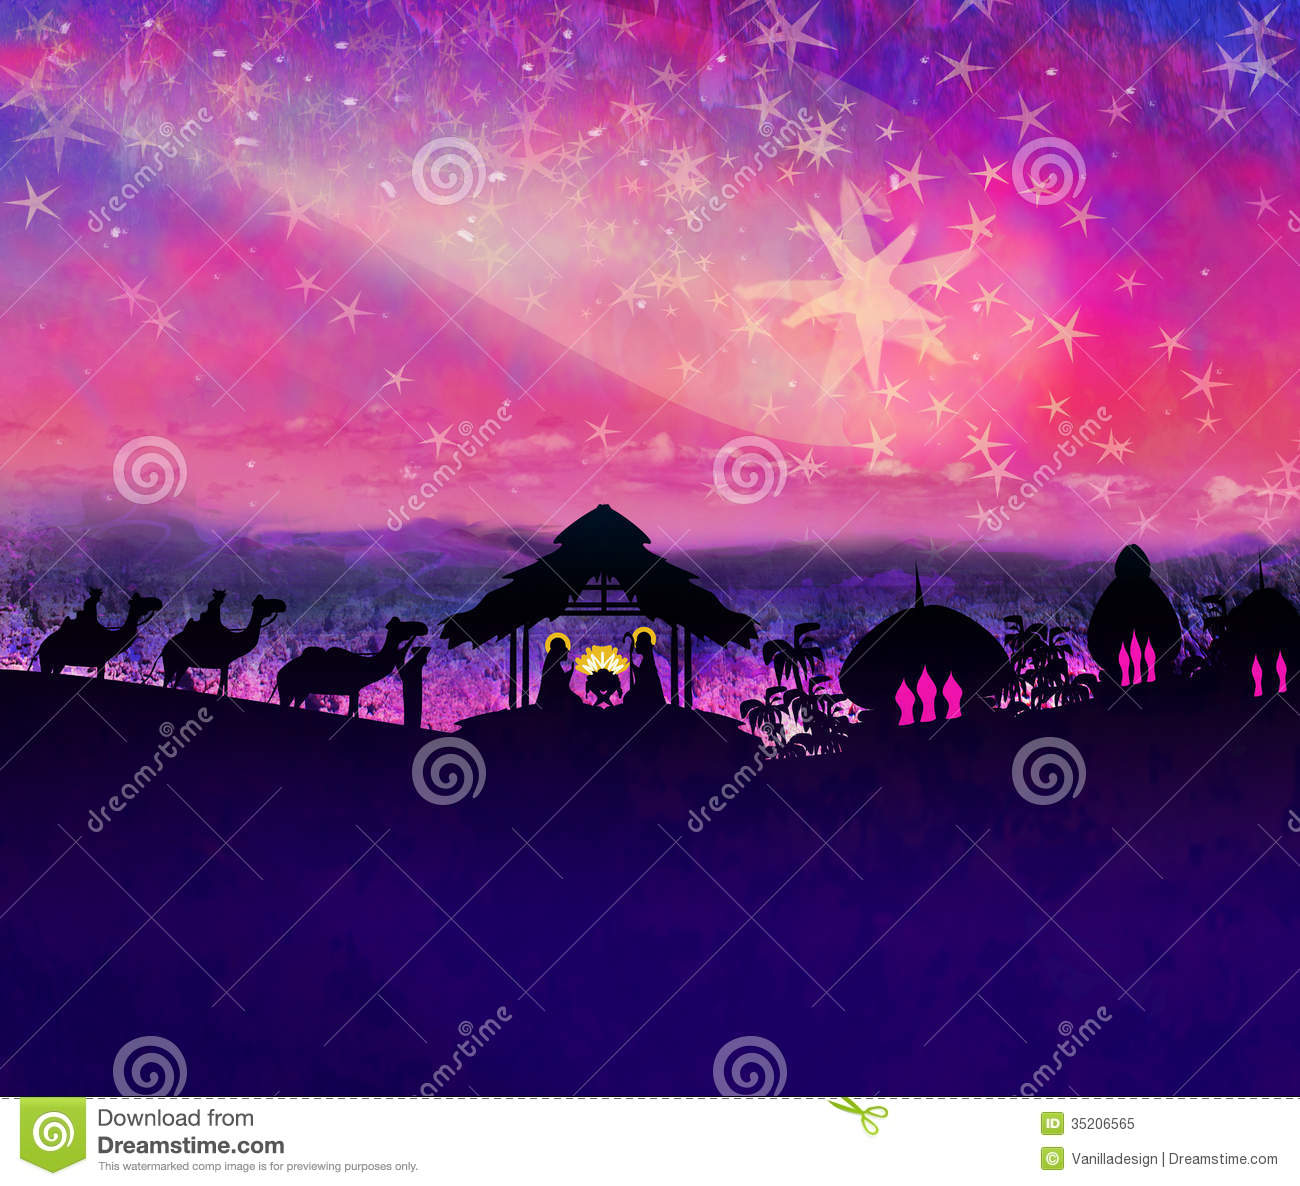 White Nativity Star 47 LED Lights 3 Dimensional P1651 further Nagi And Seeded Eucalyptus Garland 24276 in addition Zinnia Flower Wallpaper besides Product product id 53 likewise Master Bathroom Accessorizing. on design for star of bethlehem